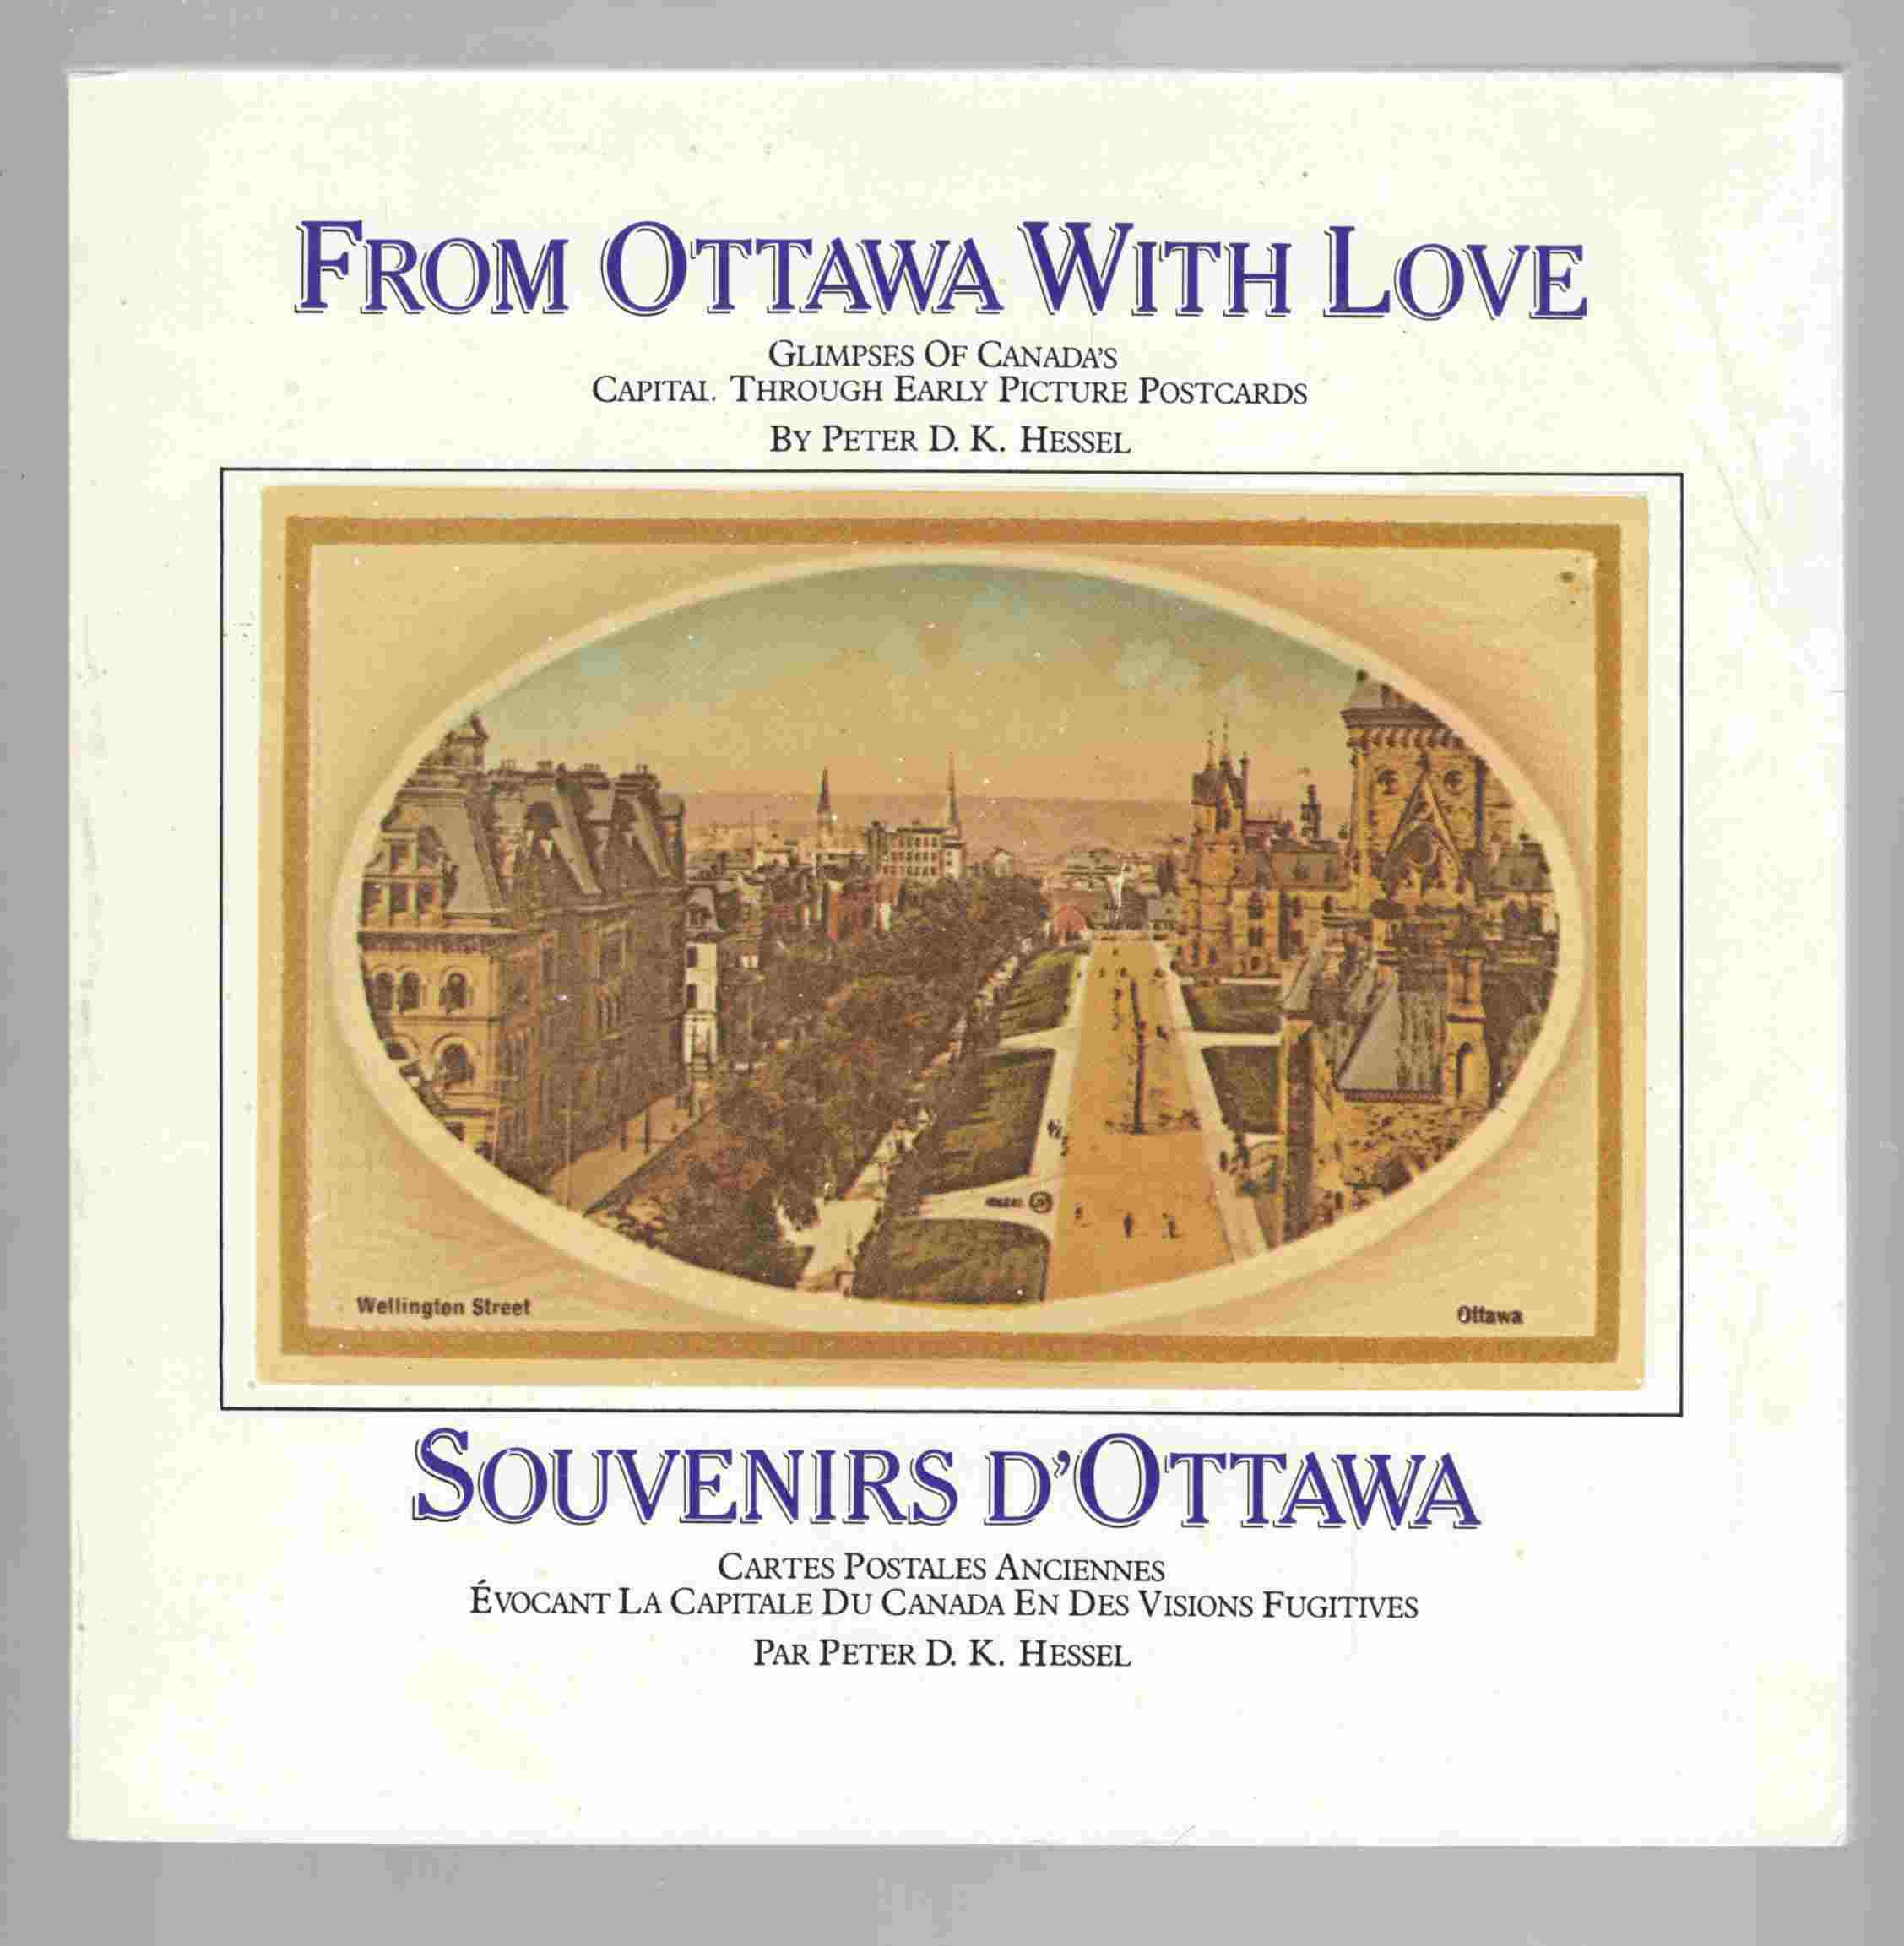 Image for From Ottawa with Love: Glimpses of Canada's Capital through Early Picture Postcards Souvenirs D'Ottawa: Cartes Postales Anciennes Evocant La Capitale Du Canada En Des Visions Fugitives